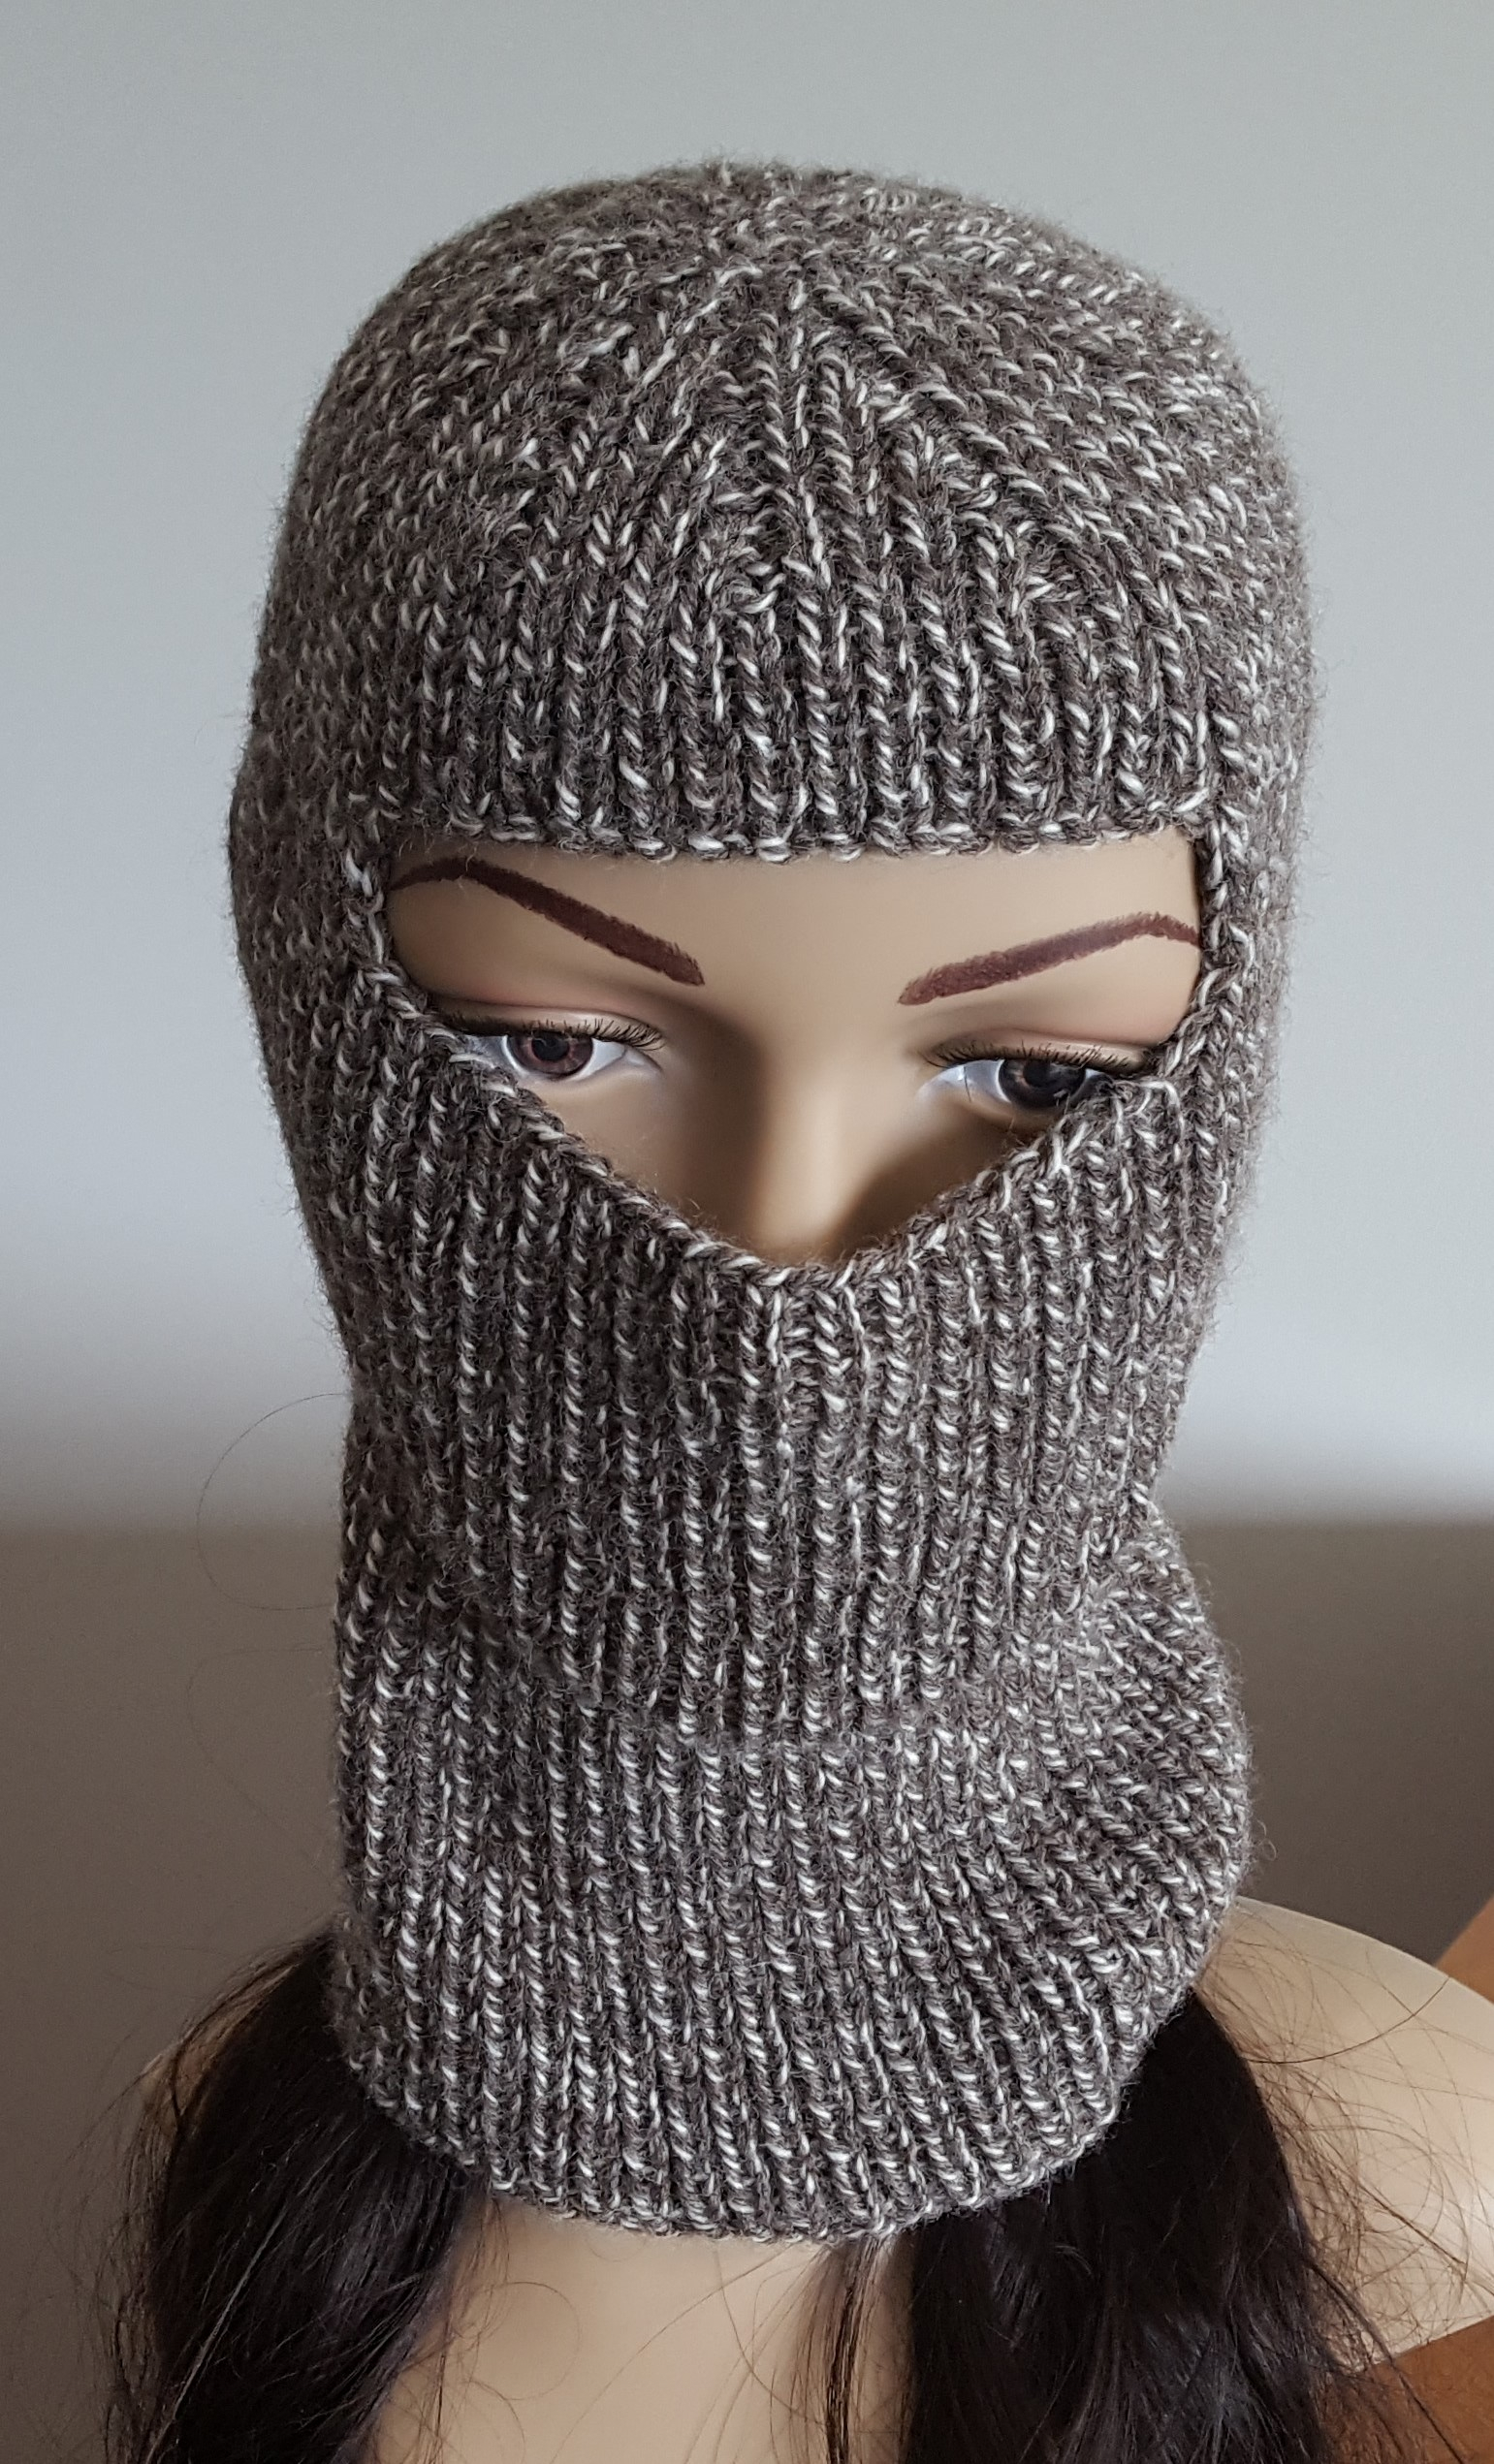 Knitting Pattern Balaclava 8ply 1x1 Rib Balaclava Knitting Pattern Rory